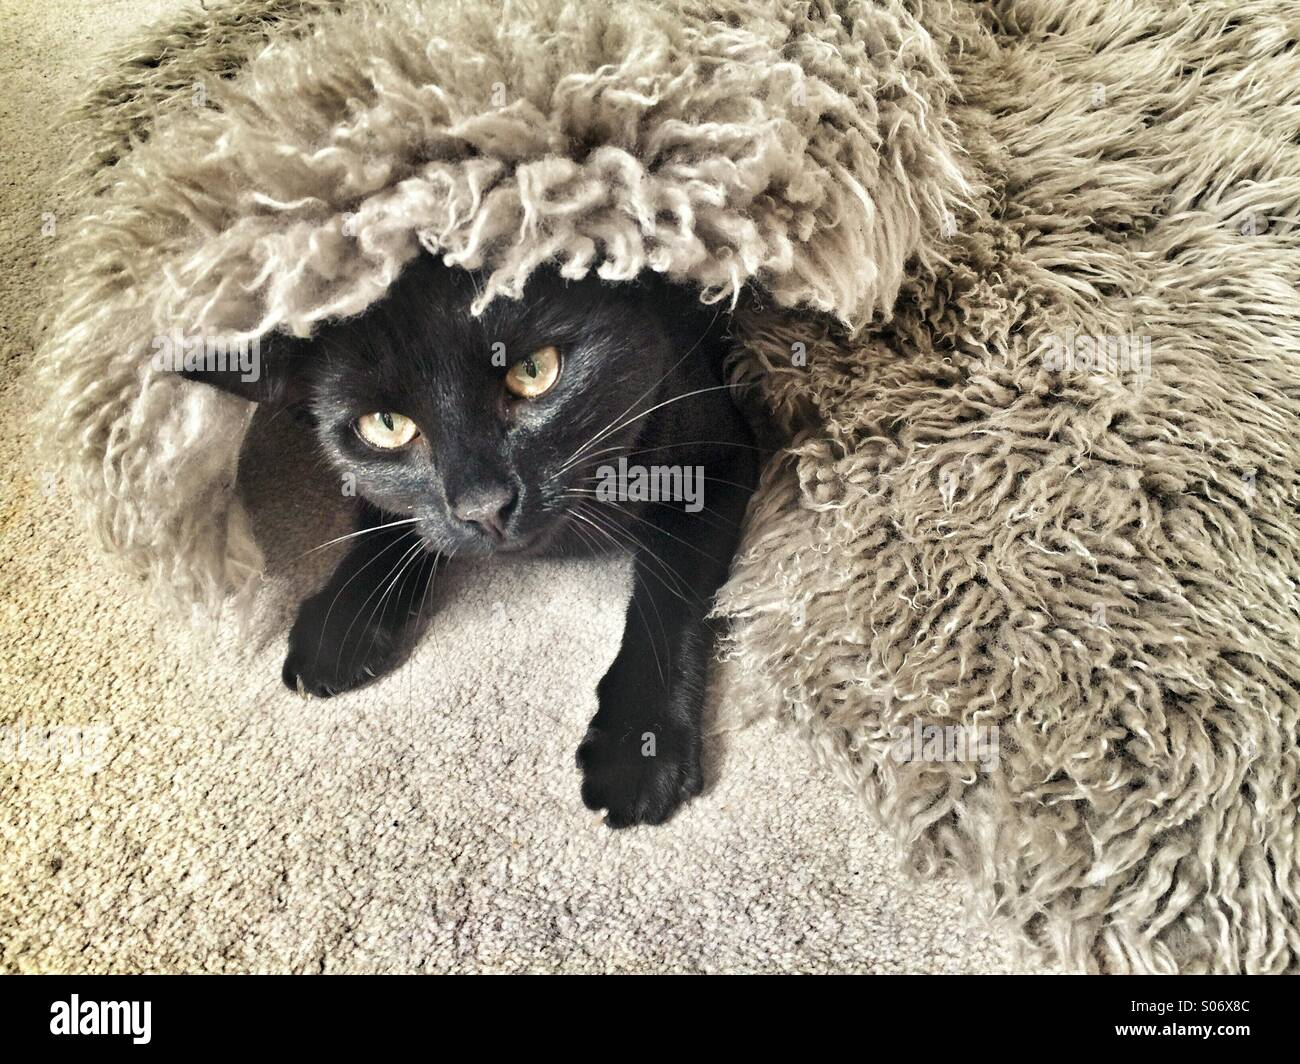 A black cat hiding under a rug. - Stock Image